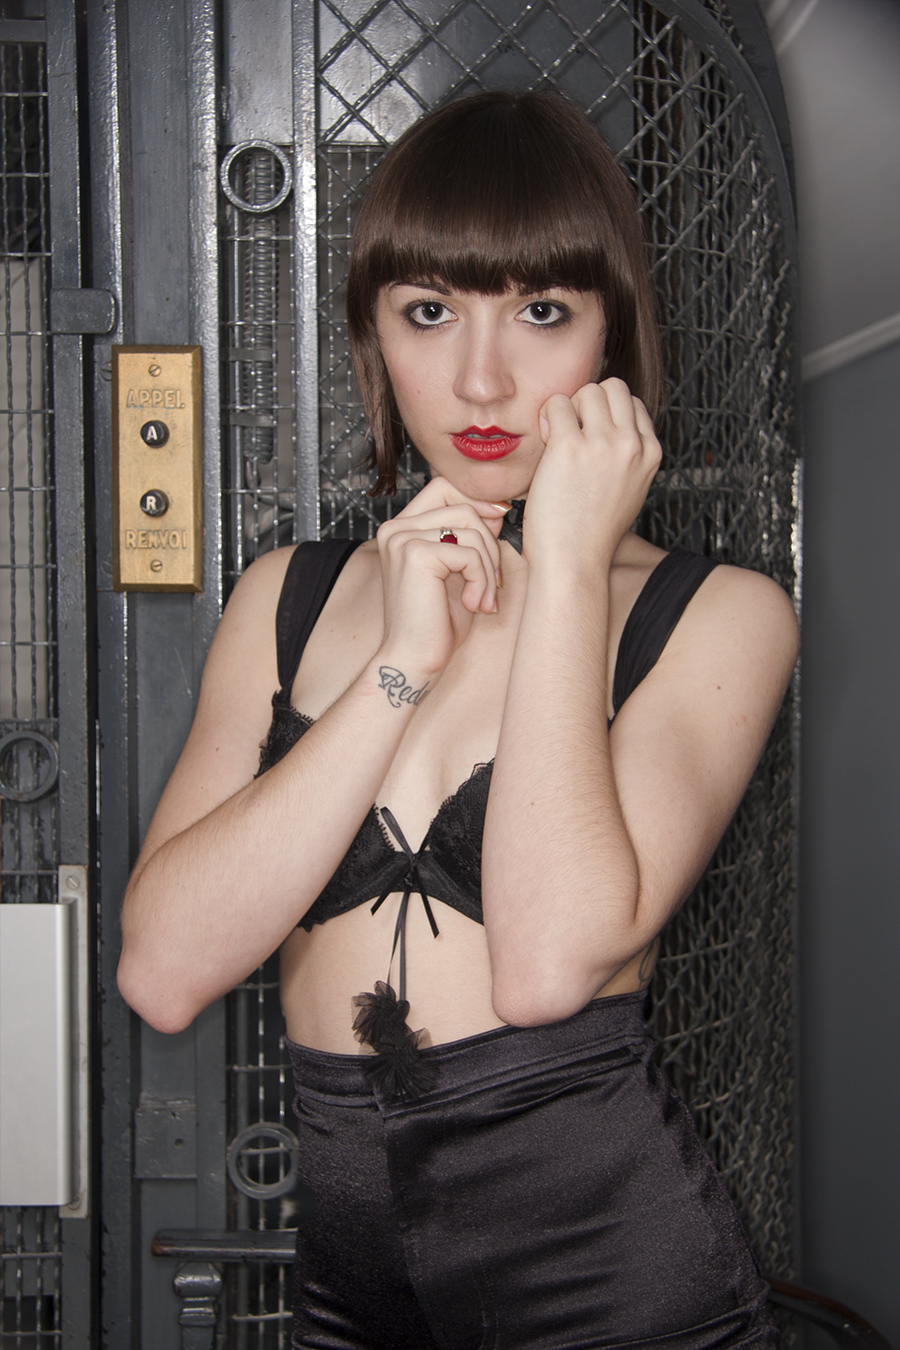 Tony_Ward_Erotica_photography_Alice_Paris_Alba_Opera_Hotel_french_nude_model_old_french_elevator